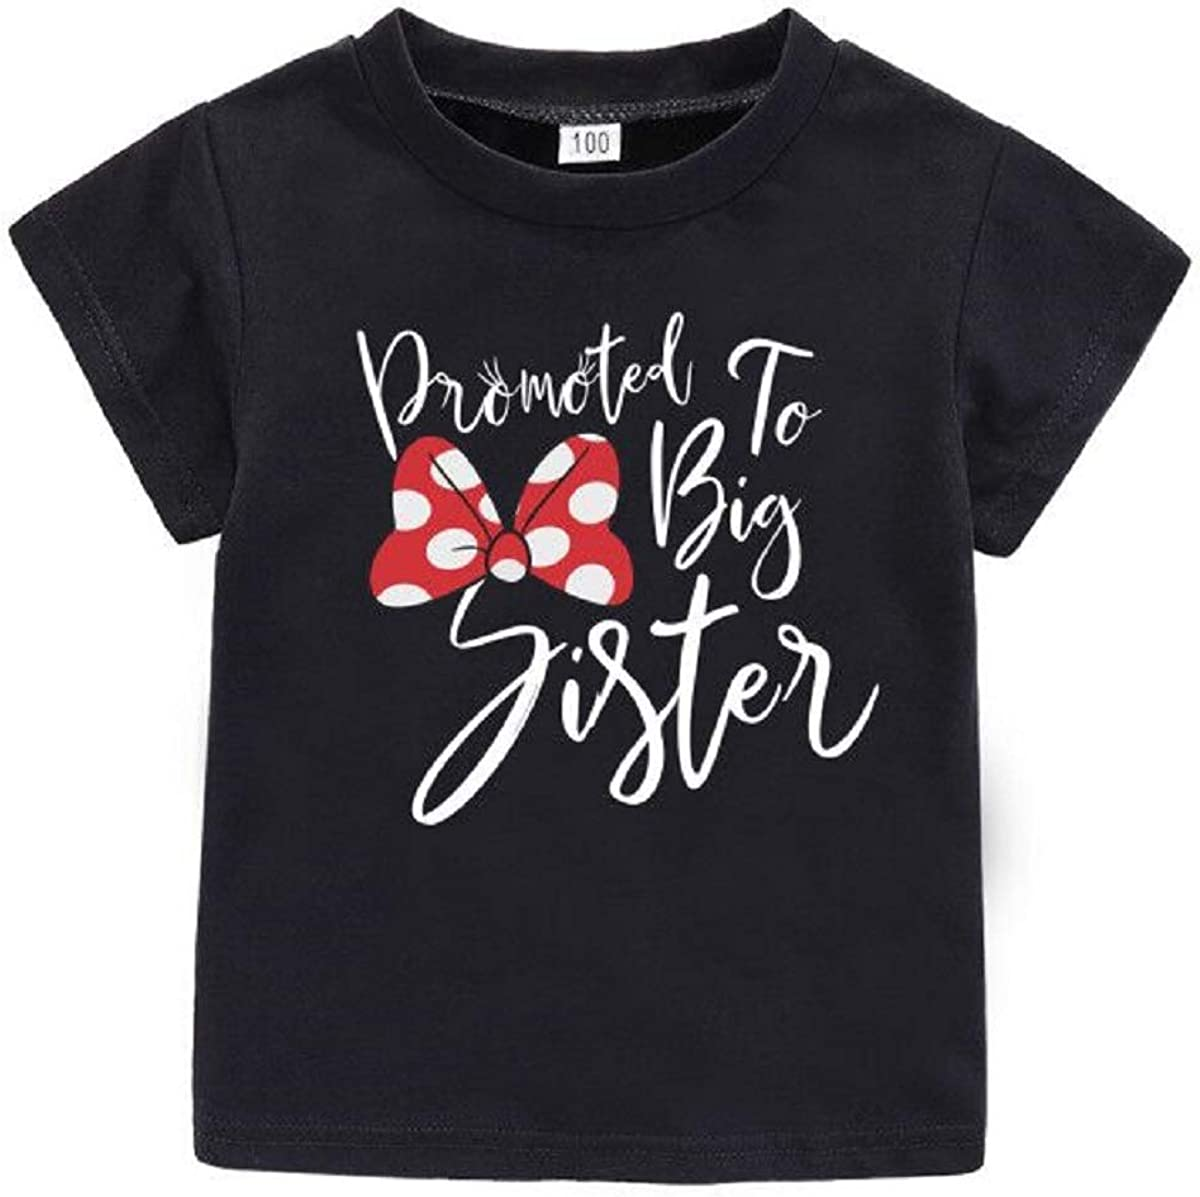 AMMENGBEI Toddler Girls Free shipping / New T-Shirt Promoted NEW Letters P Sister Big to